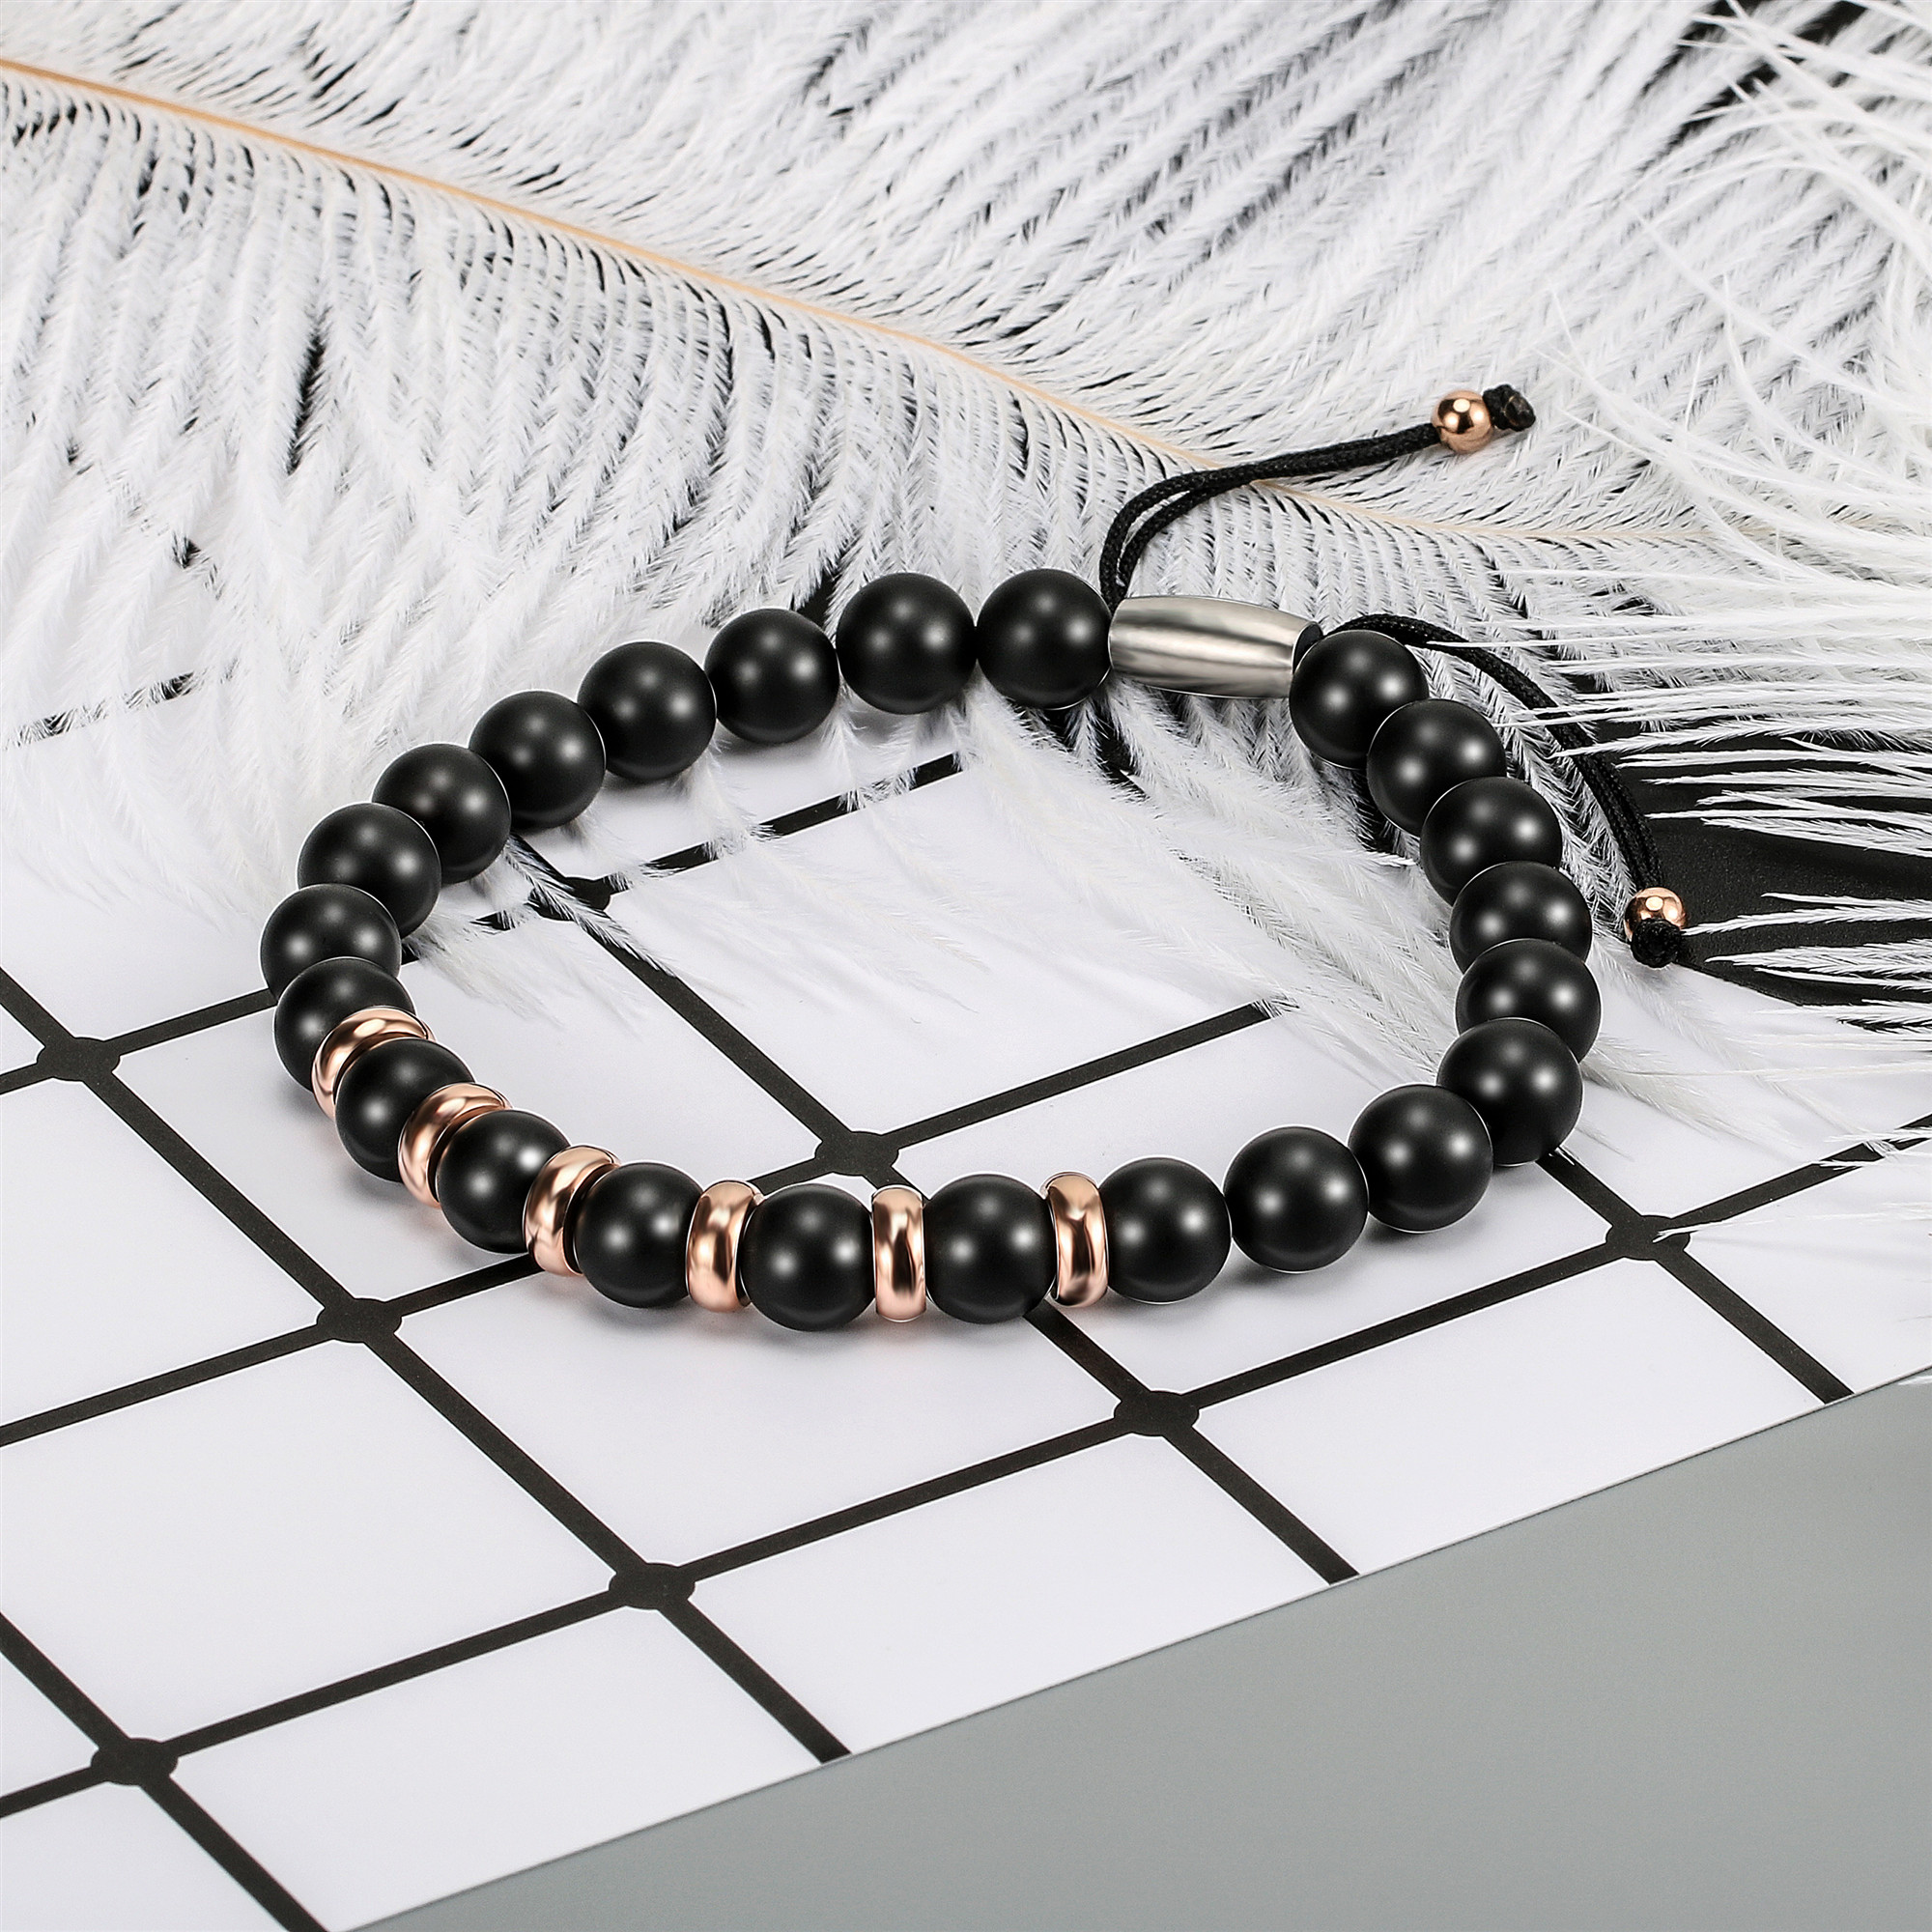 Fashion Bracelet Men Natural Agates Black Onyx Beads Bracelet for Women Mens Stainless Steel Charm Jewelry in Chain Link Bracelets from Jewelry Accessories